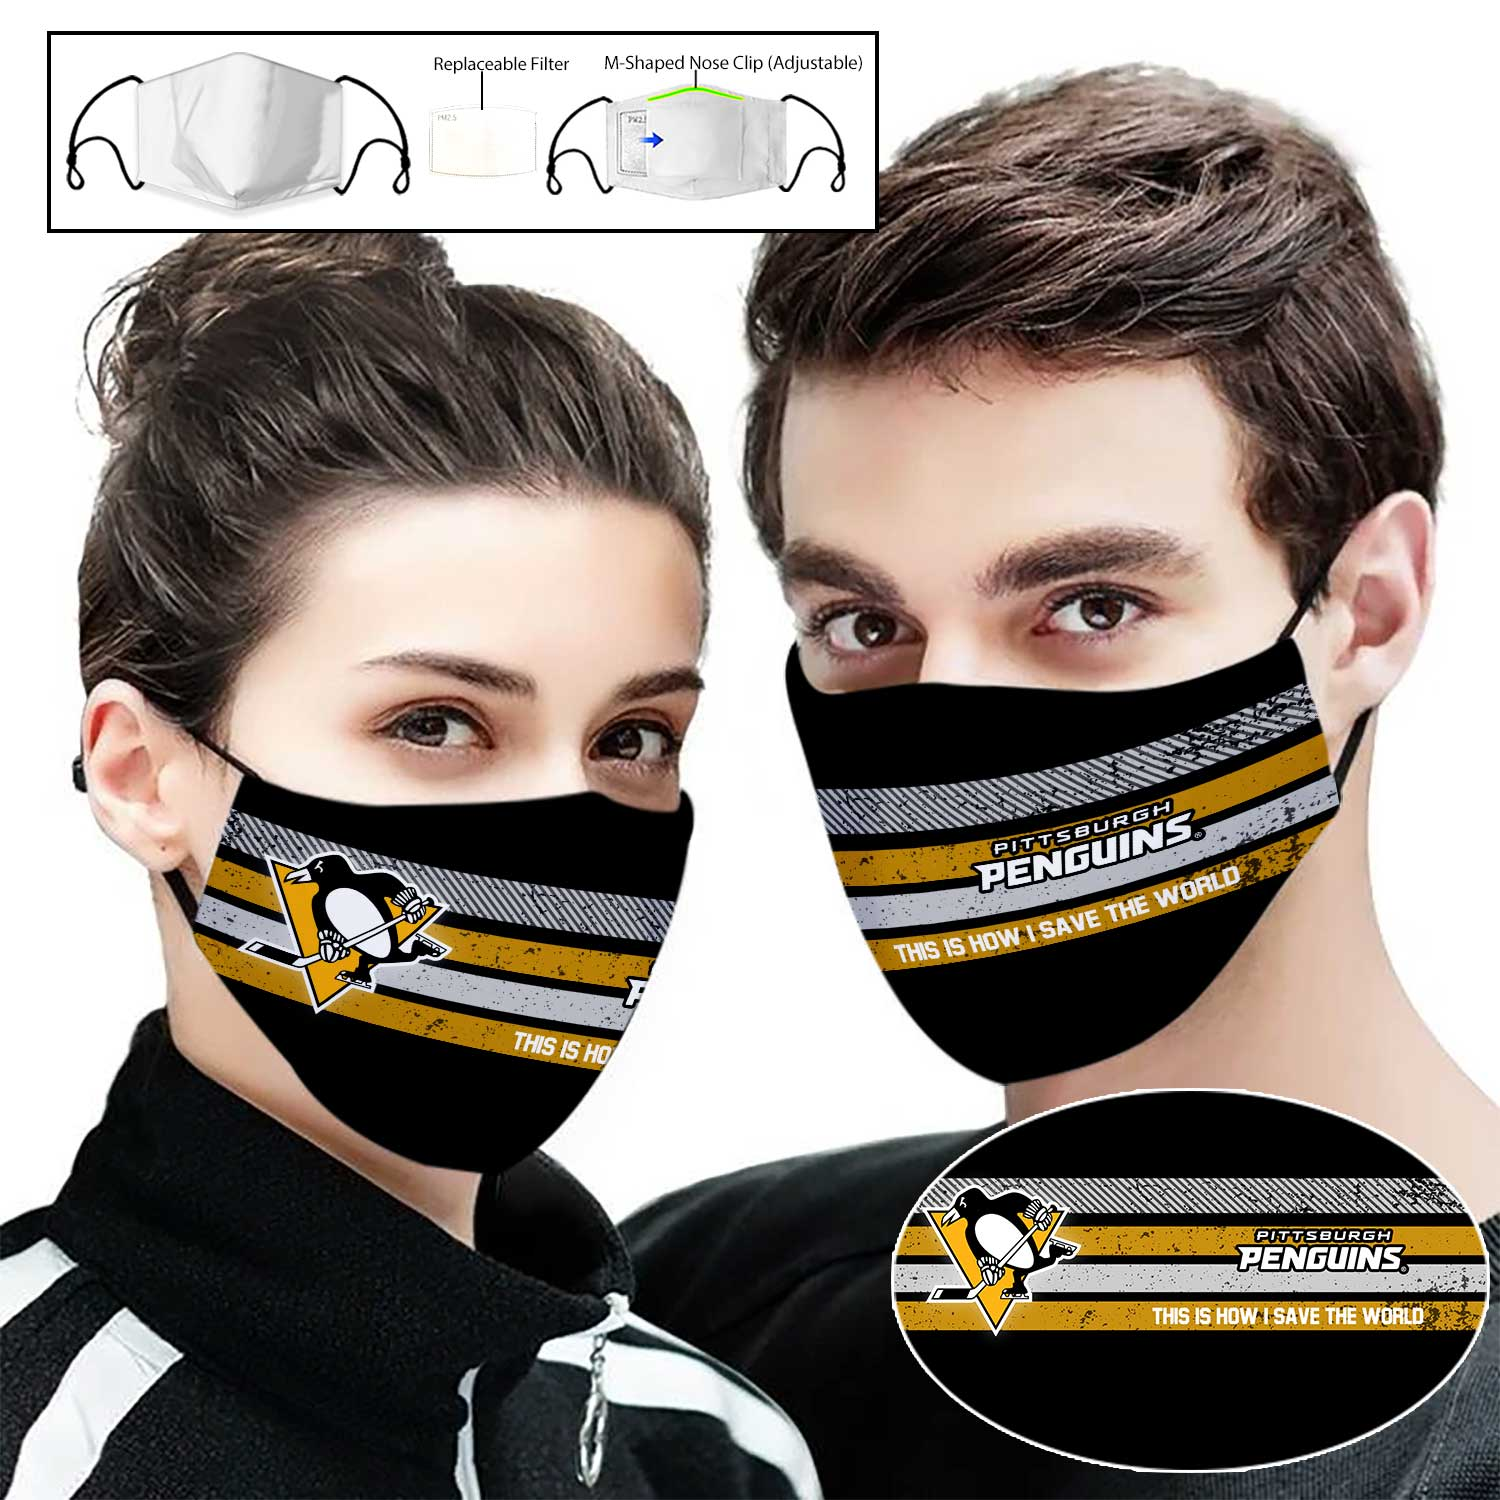 Pittsburgh penguins this is how i save the world face mask 2